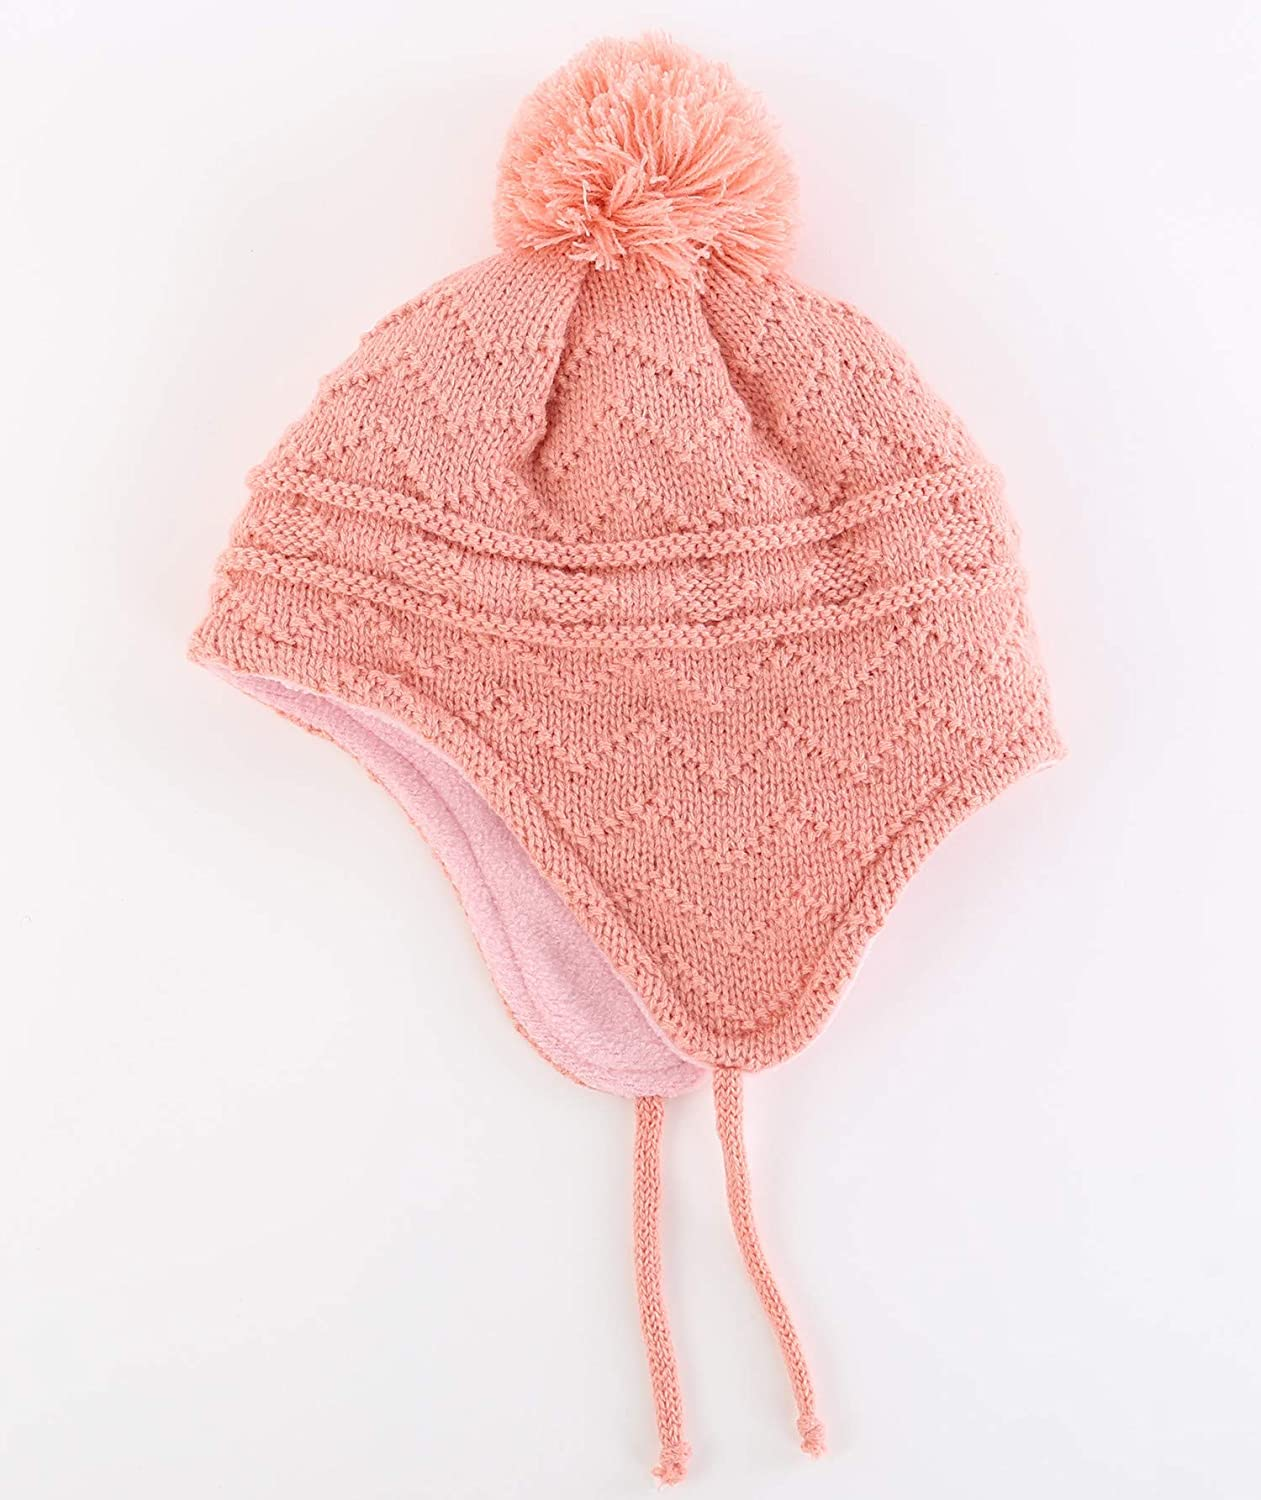 SunriseMall Toddler Winter Hat Cute Fleece Lined Knit Kids Hat with Earflap for Boys Girls